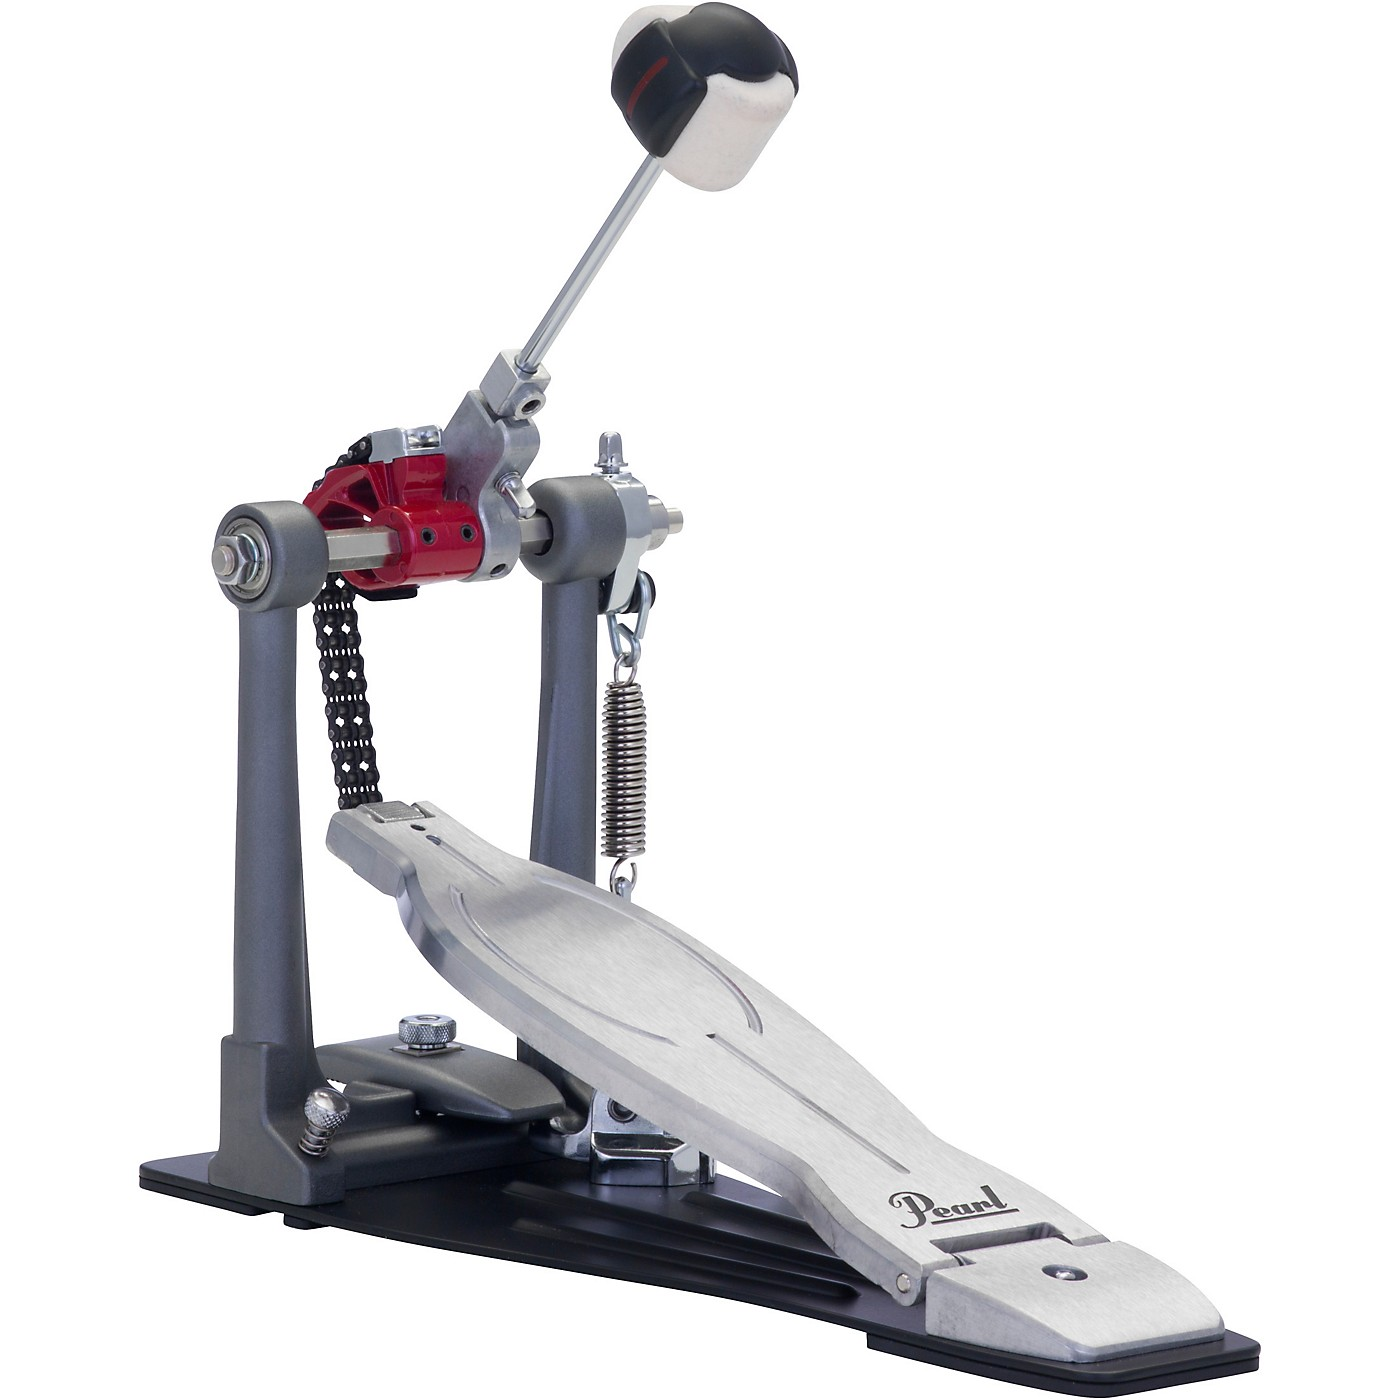 Pearl Eliminator Solo Bass Drum Pedal, Red Cam thumbnail